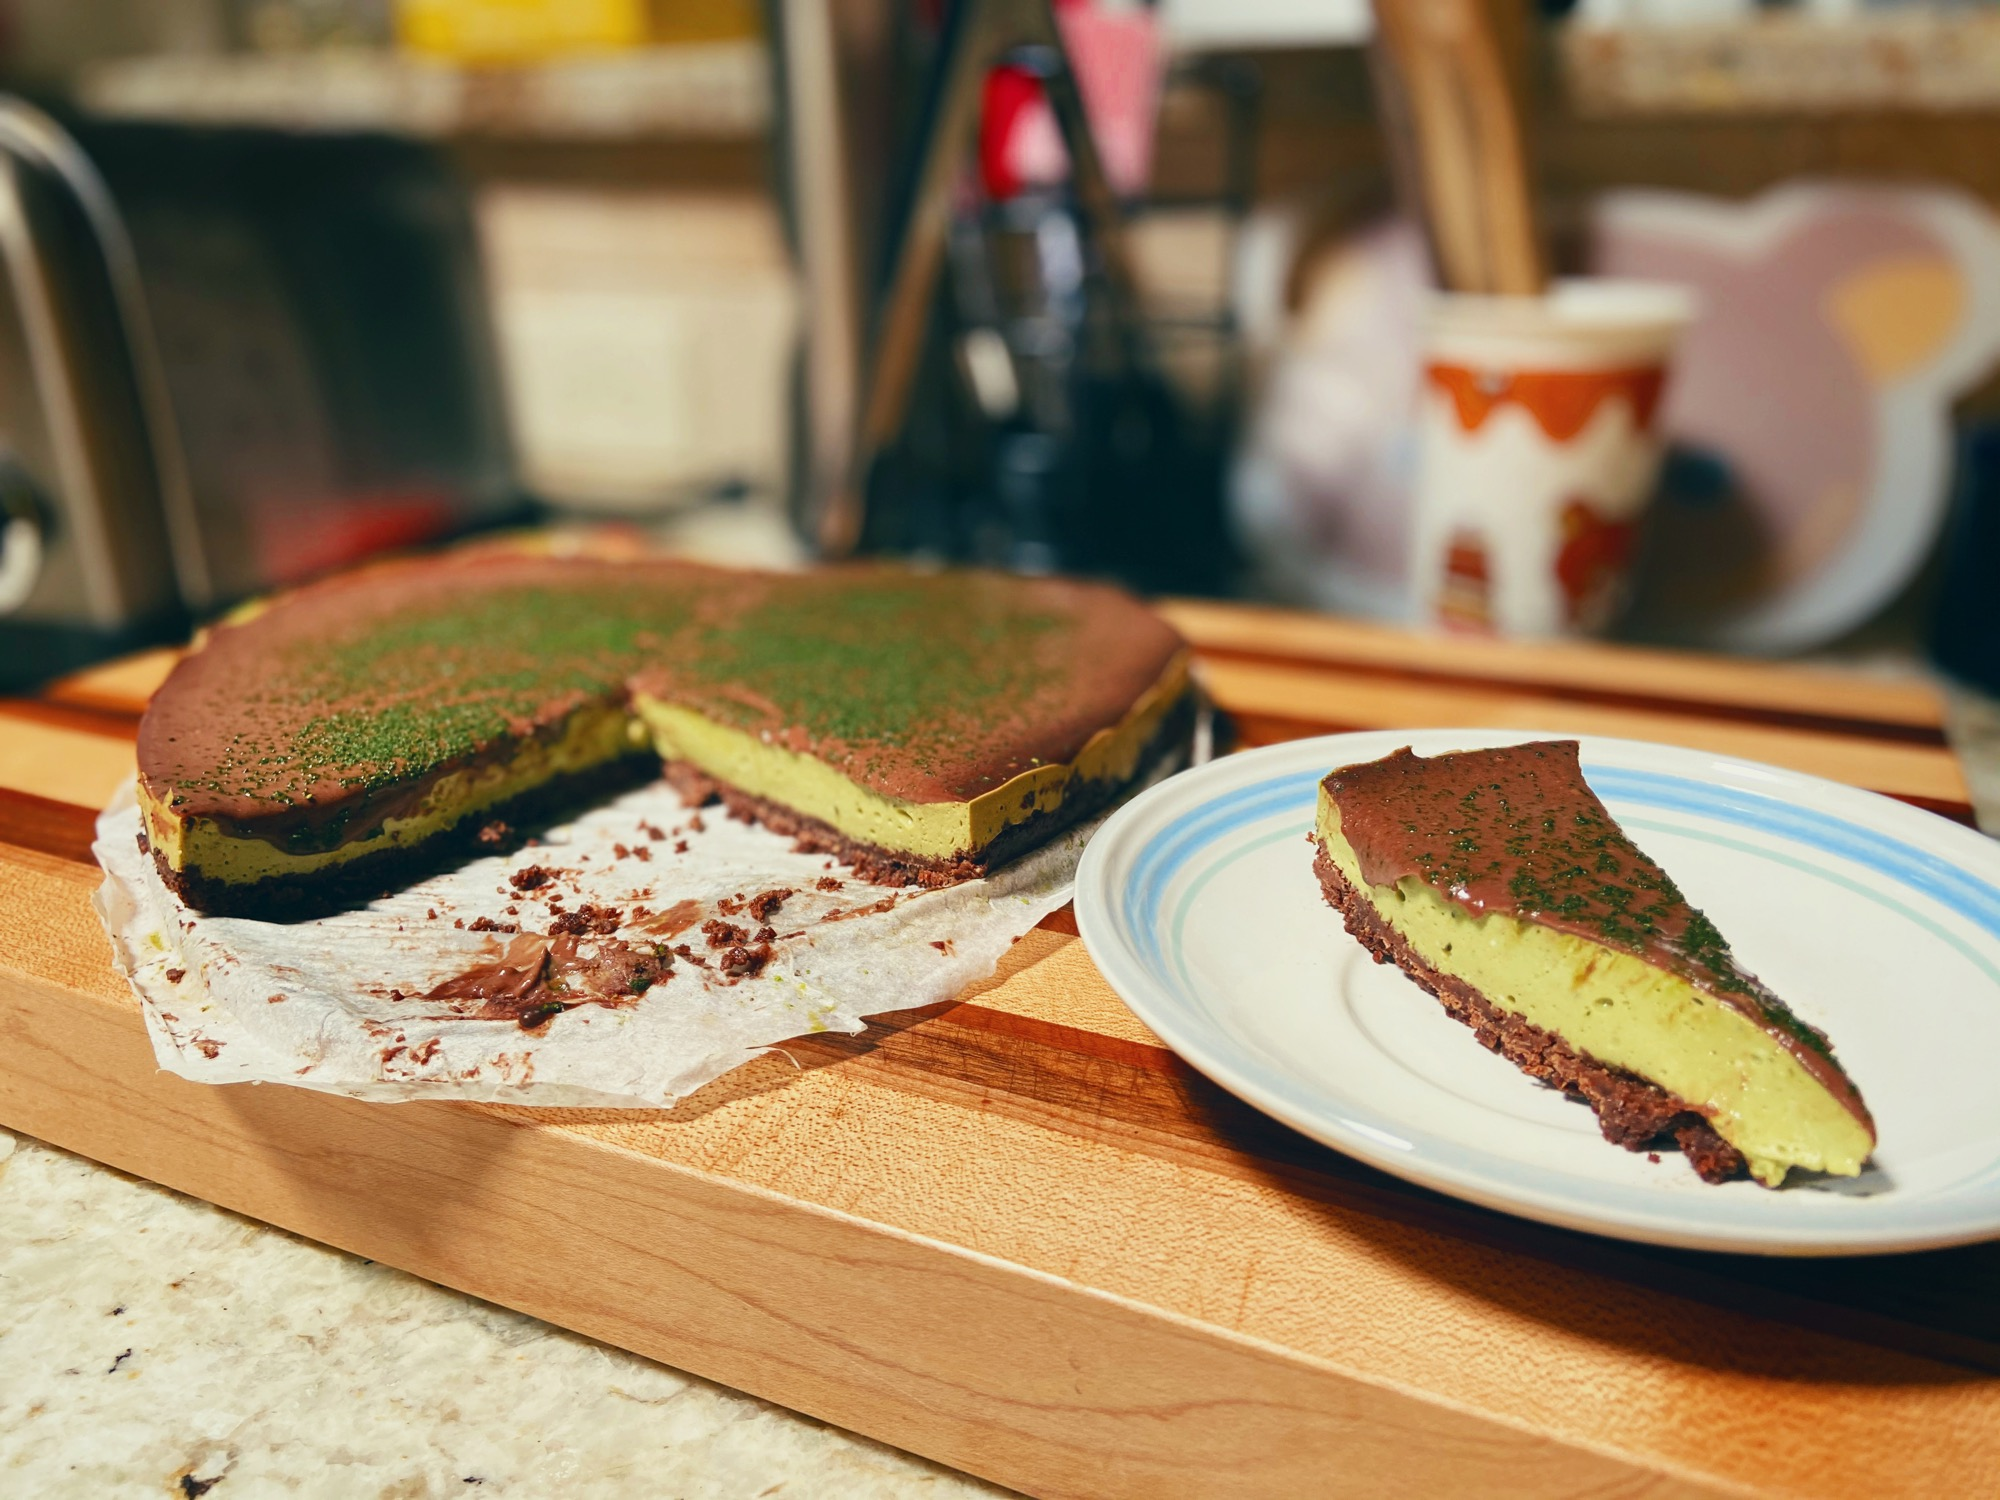 Green Tea Cheesecake kuma